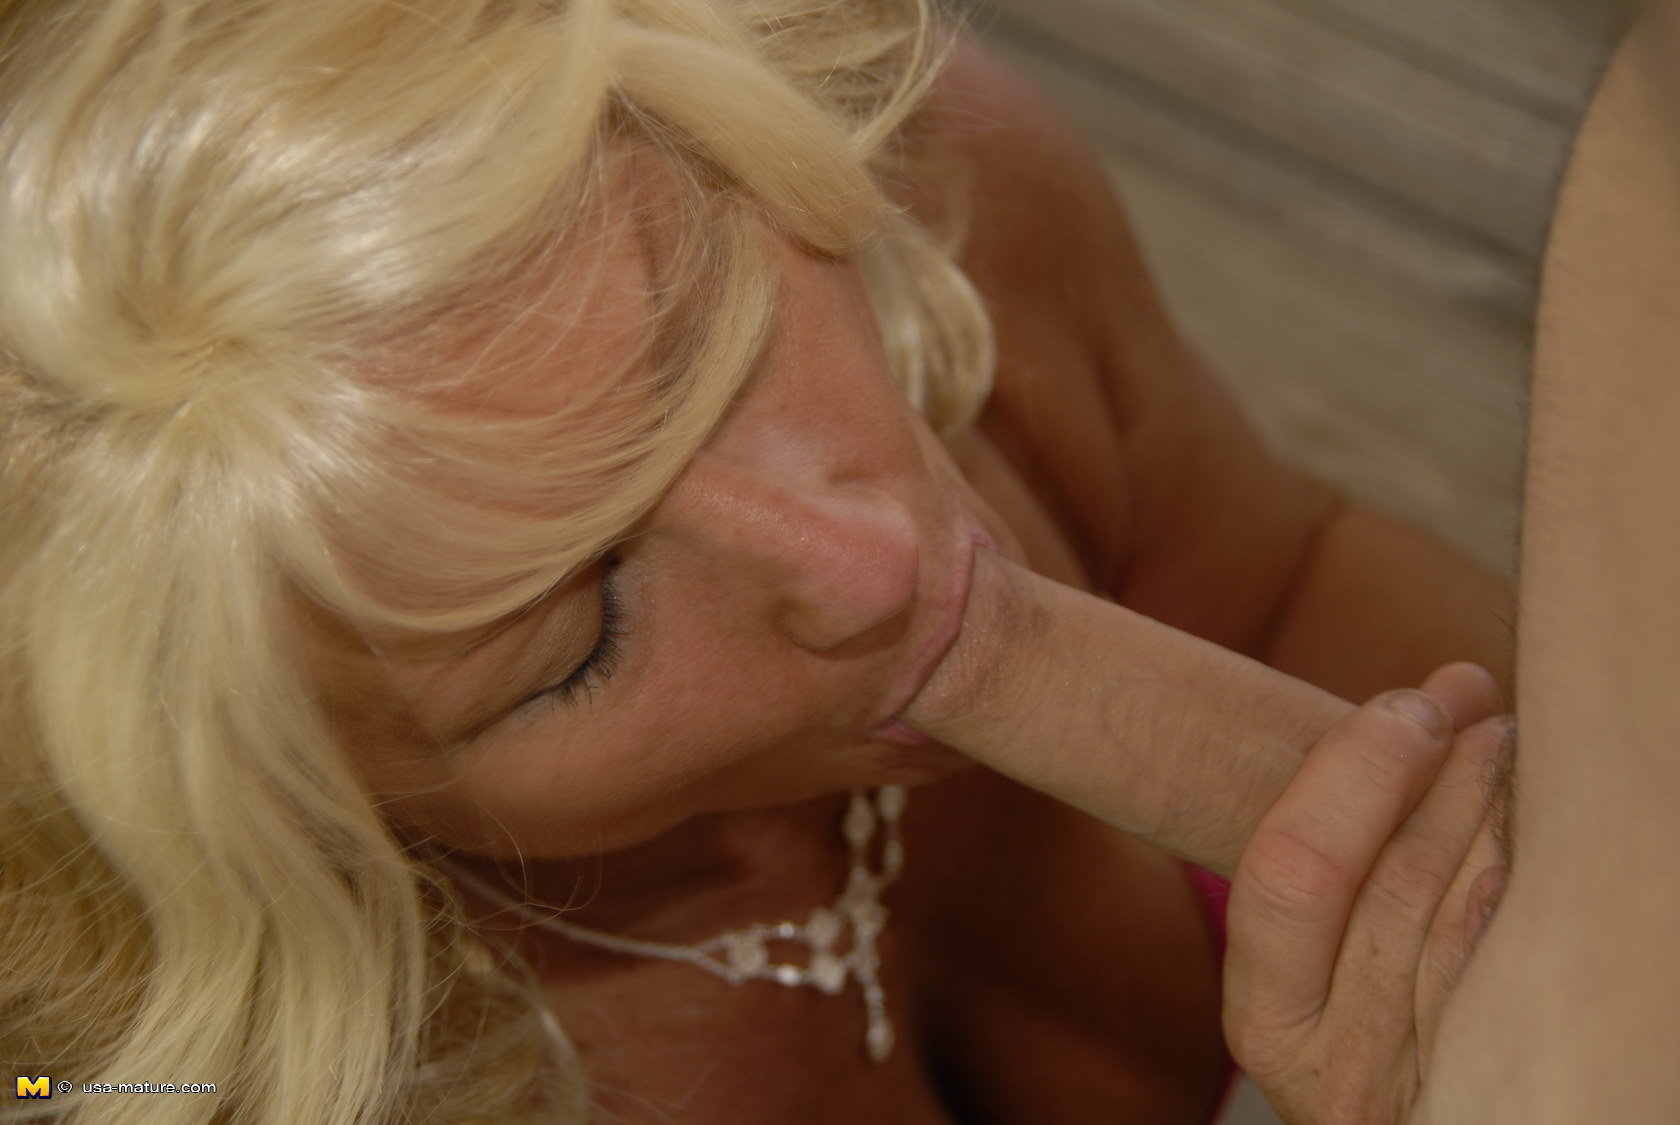 Blond takes it in the ass nd loves it